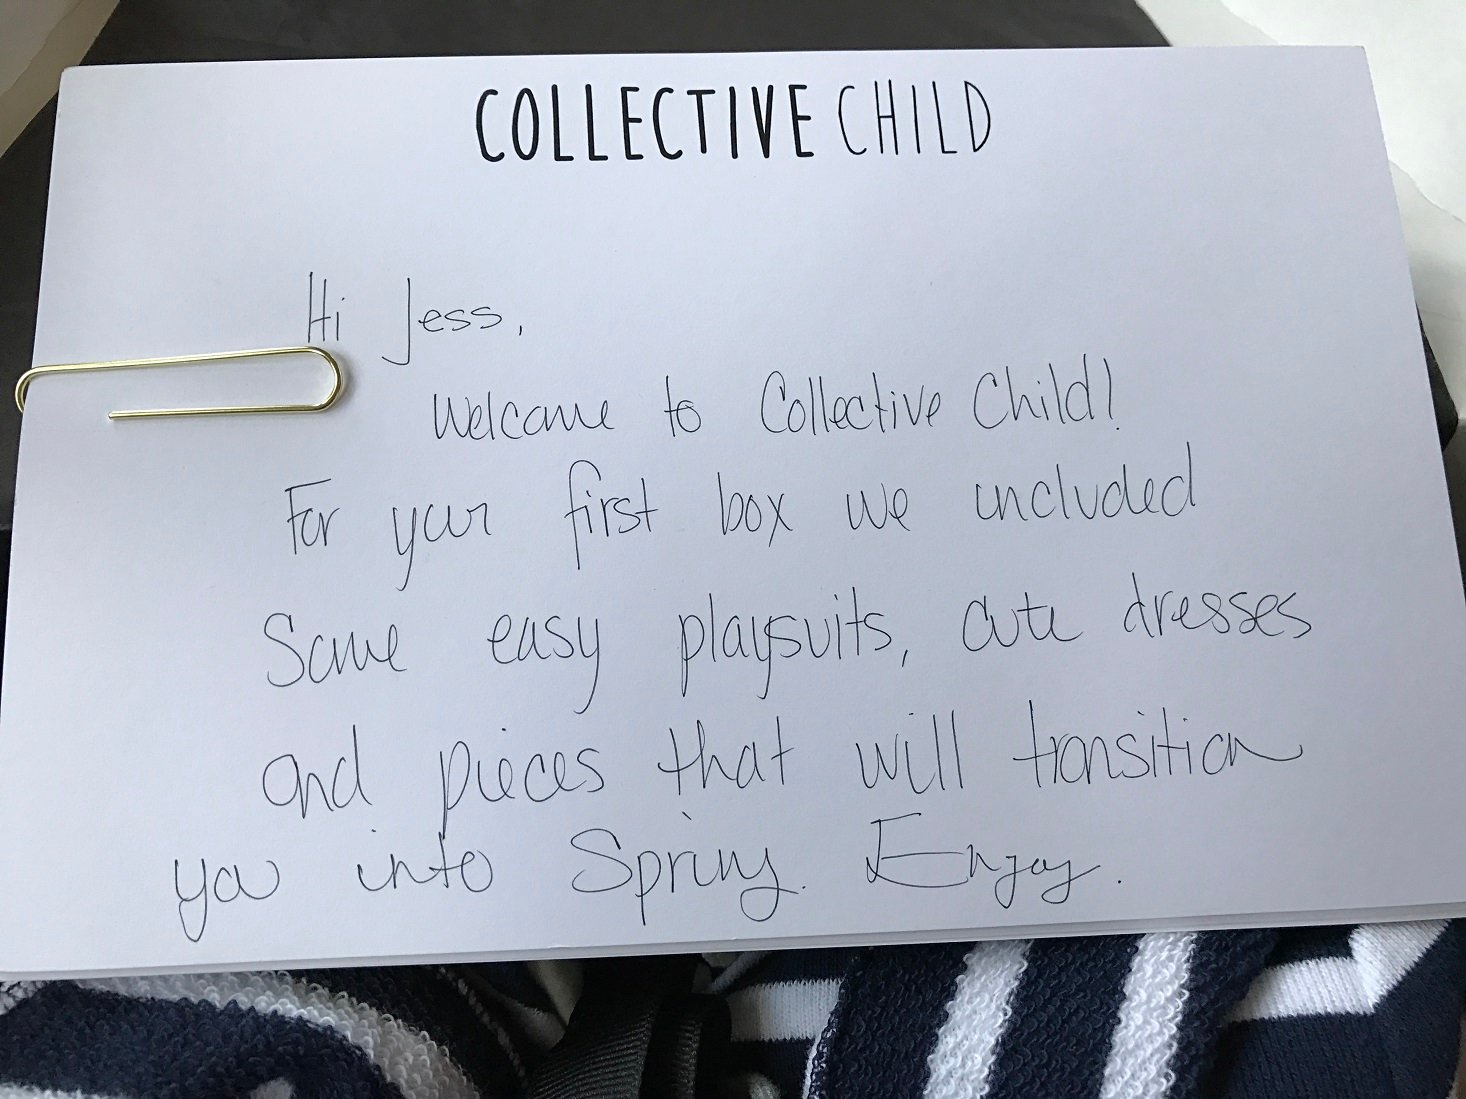 Collective-Child-February-2017-Handwritten-Note